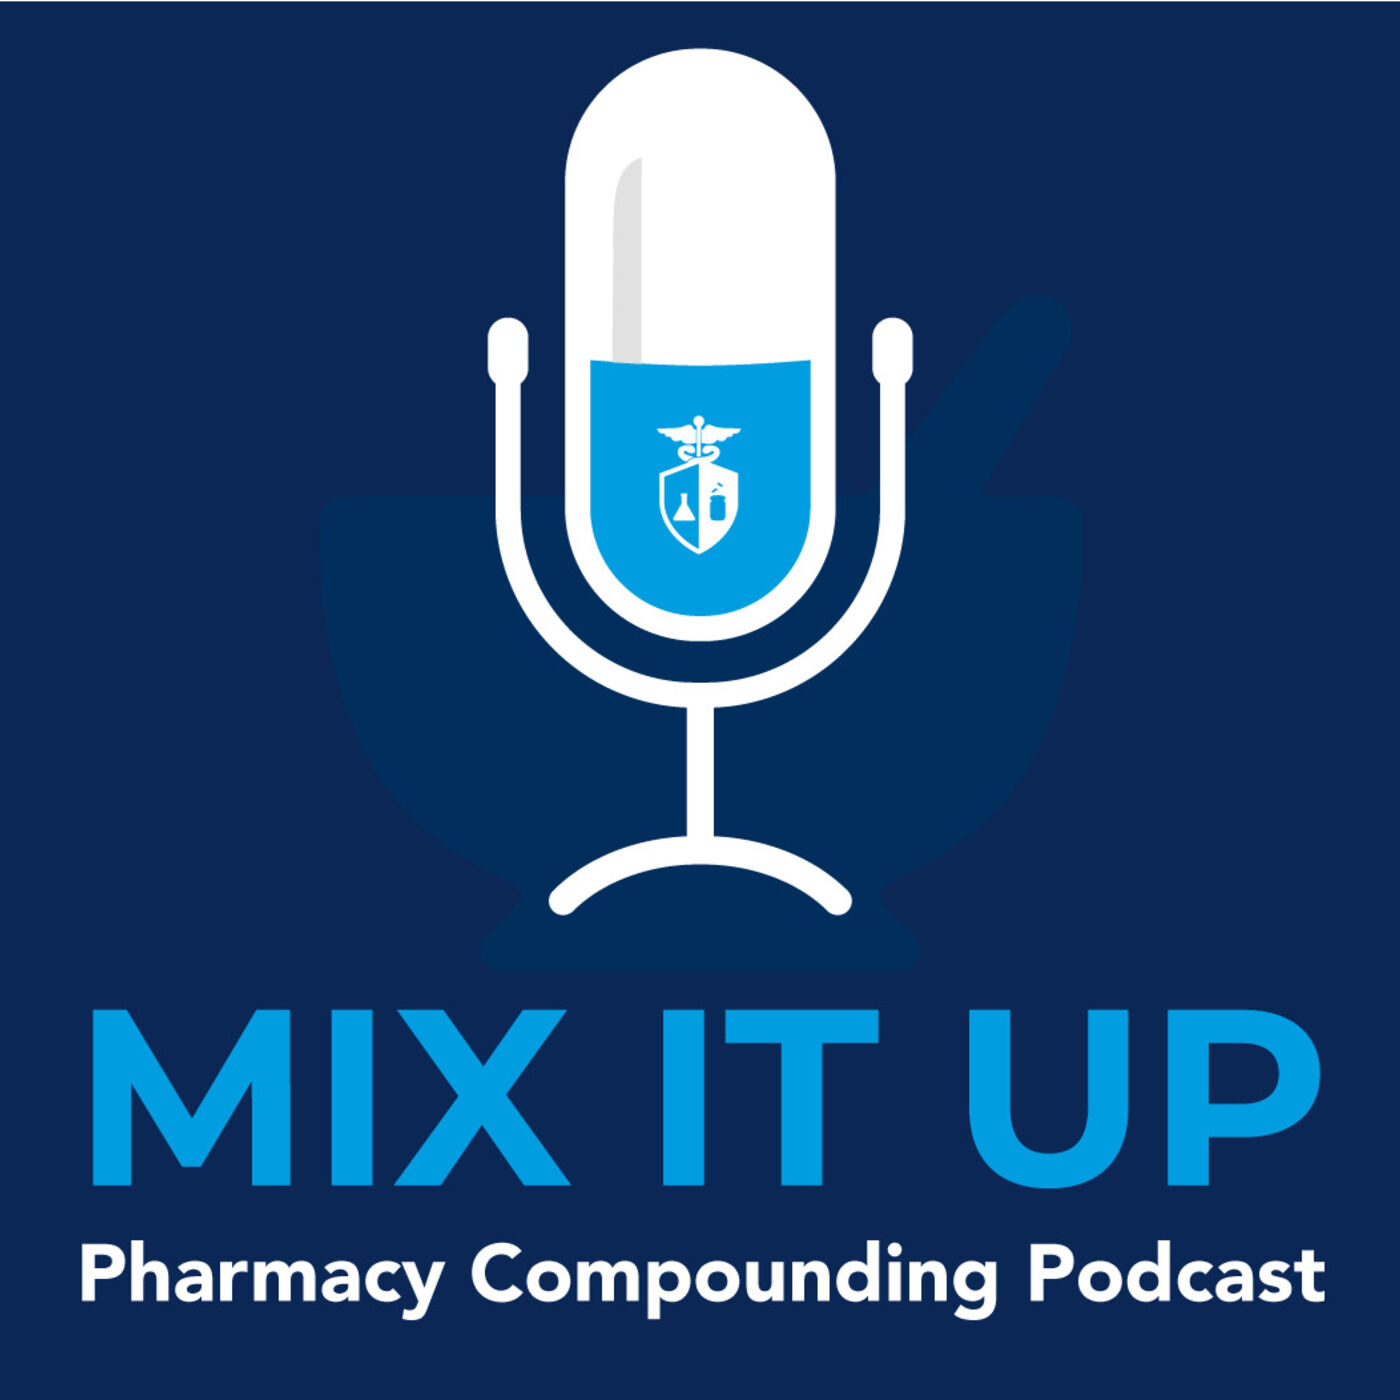 Episode 1.3 - The Role of Pharmacists in Health Care: Interview with Shawn Hodges, PharmD